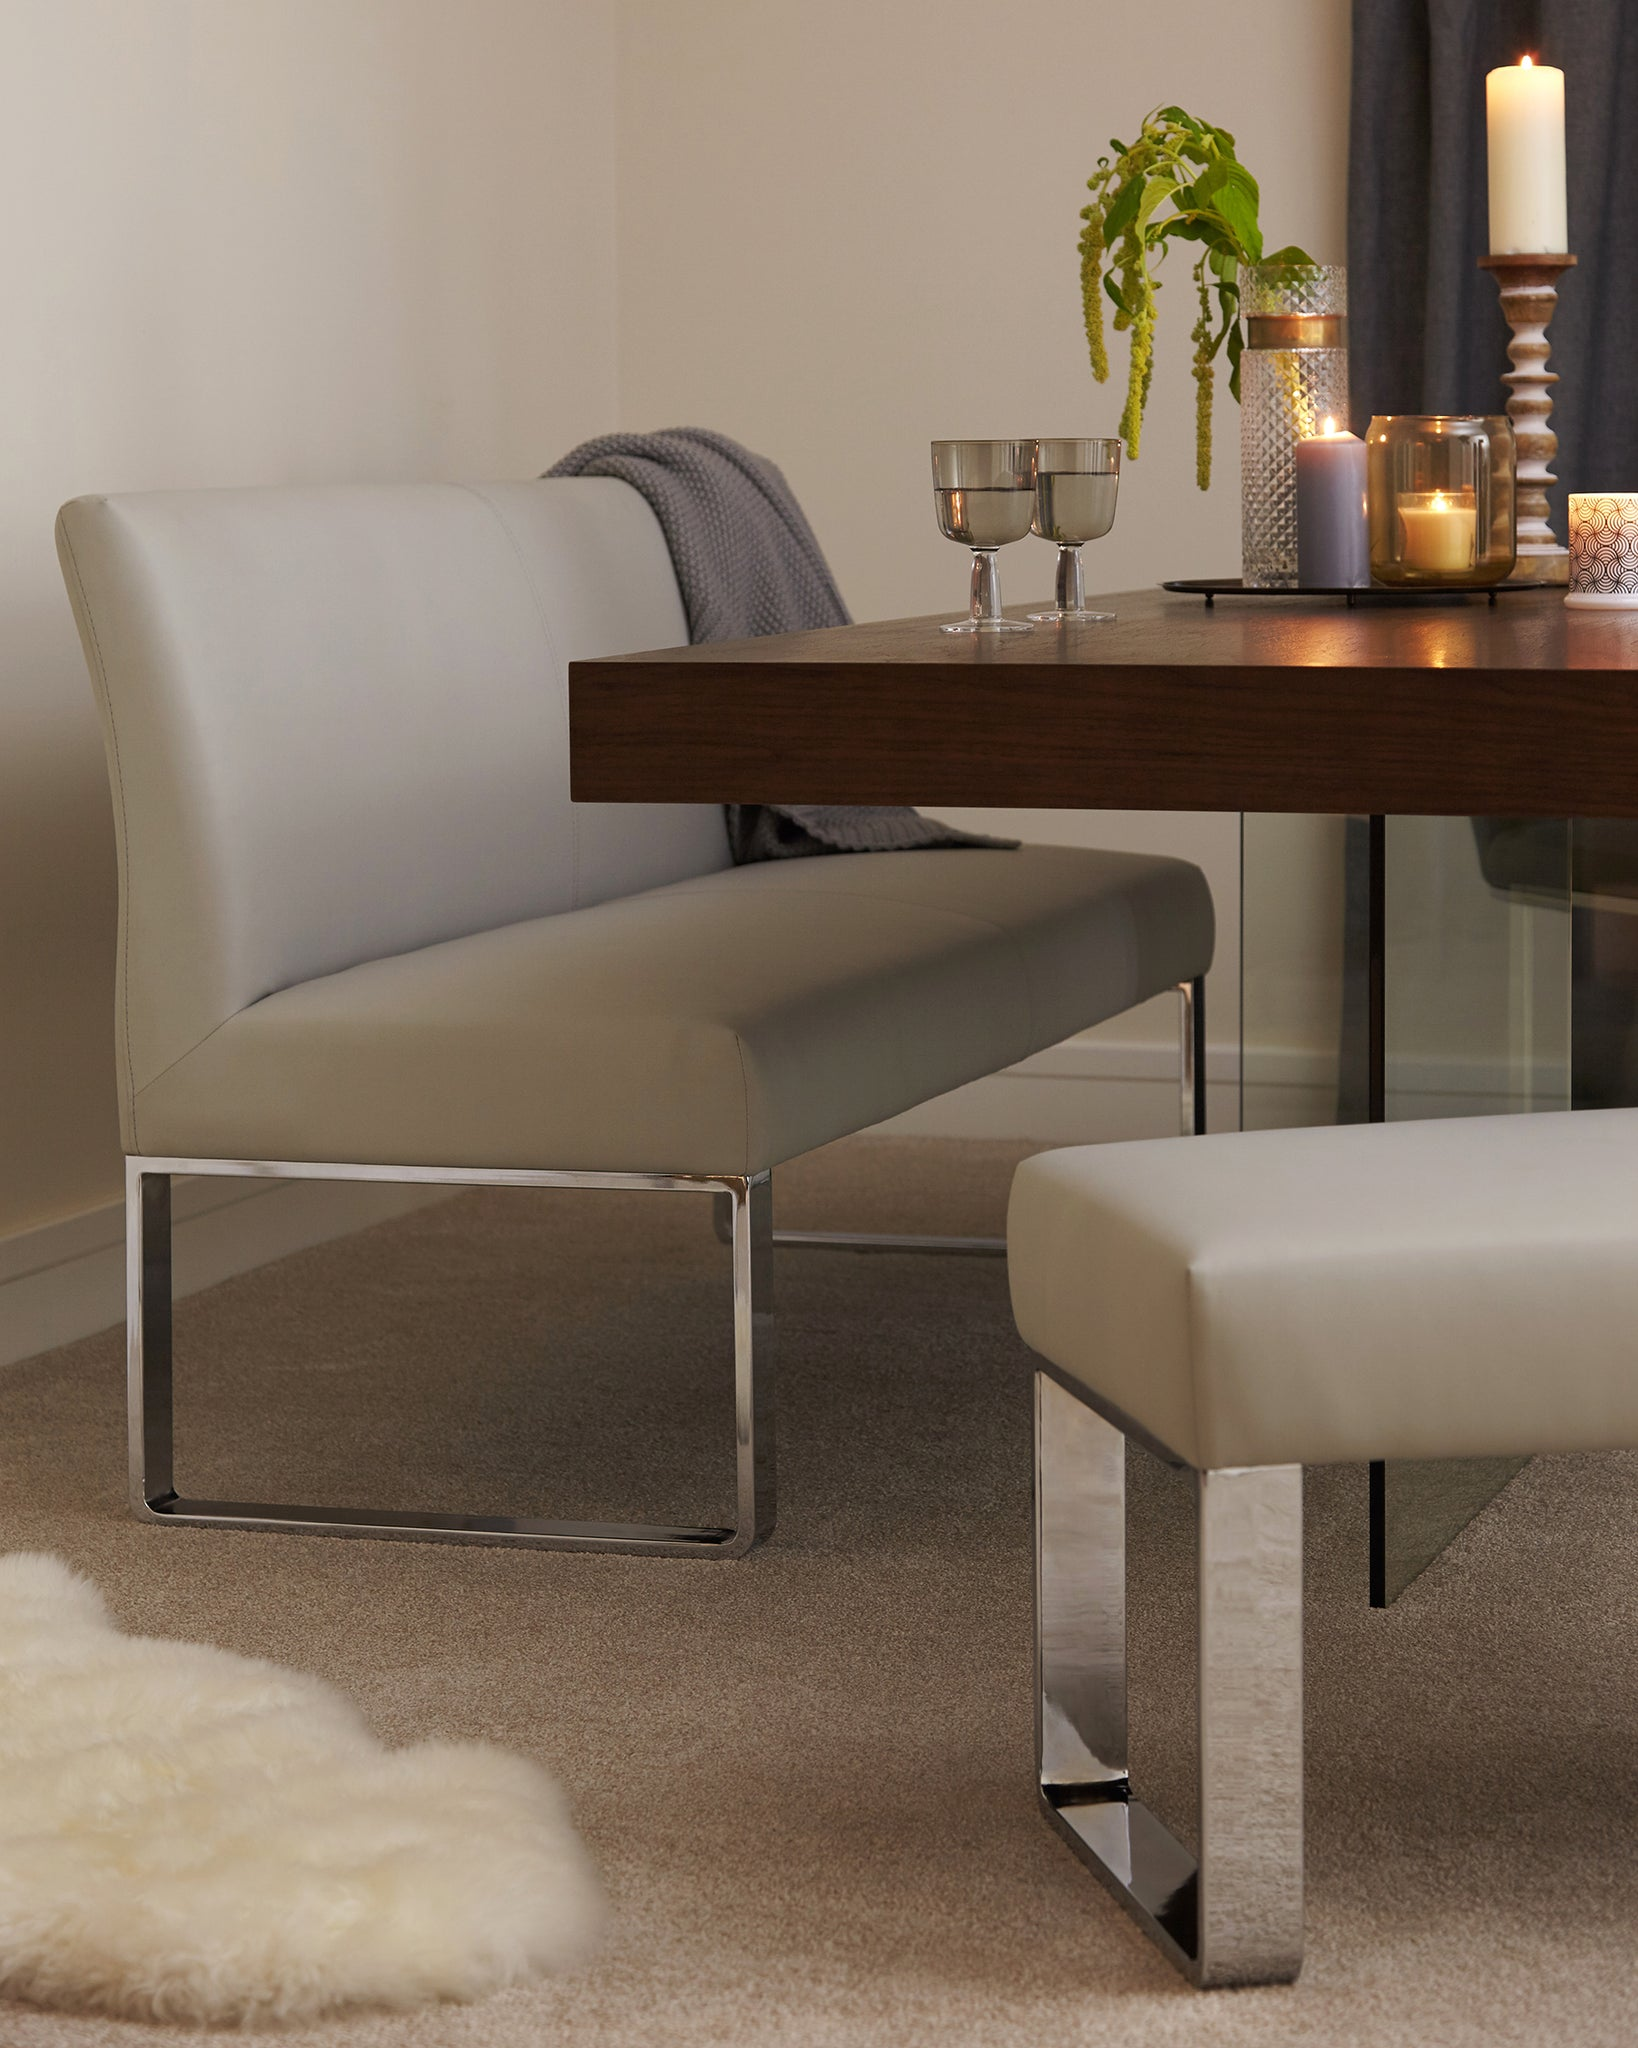 Loop 3 Seater Light Grey Faux Leather & Chrome Bench With Backrest